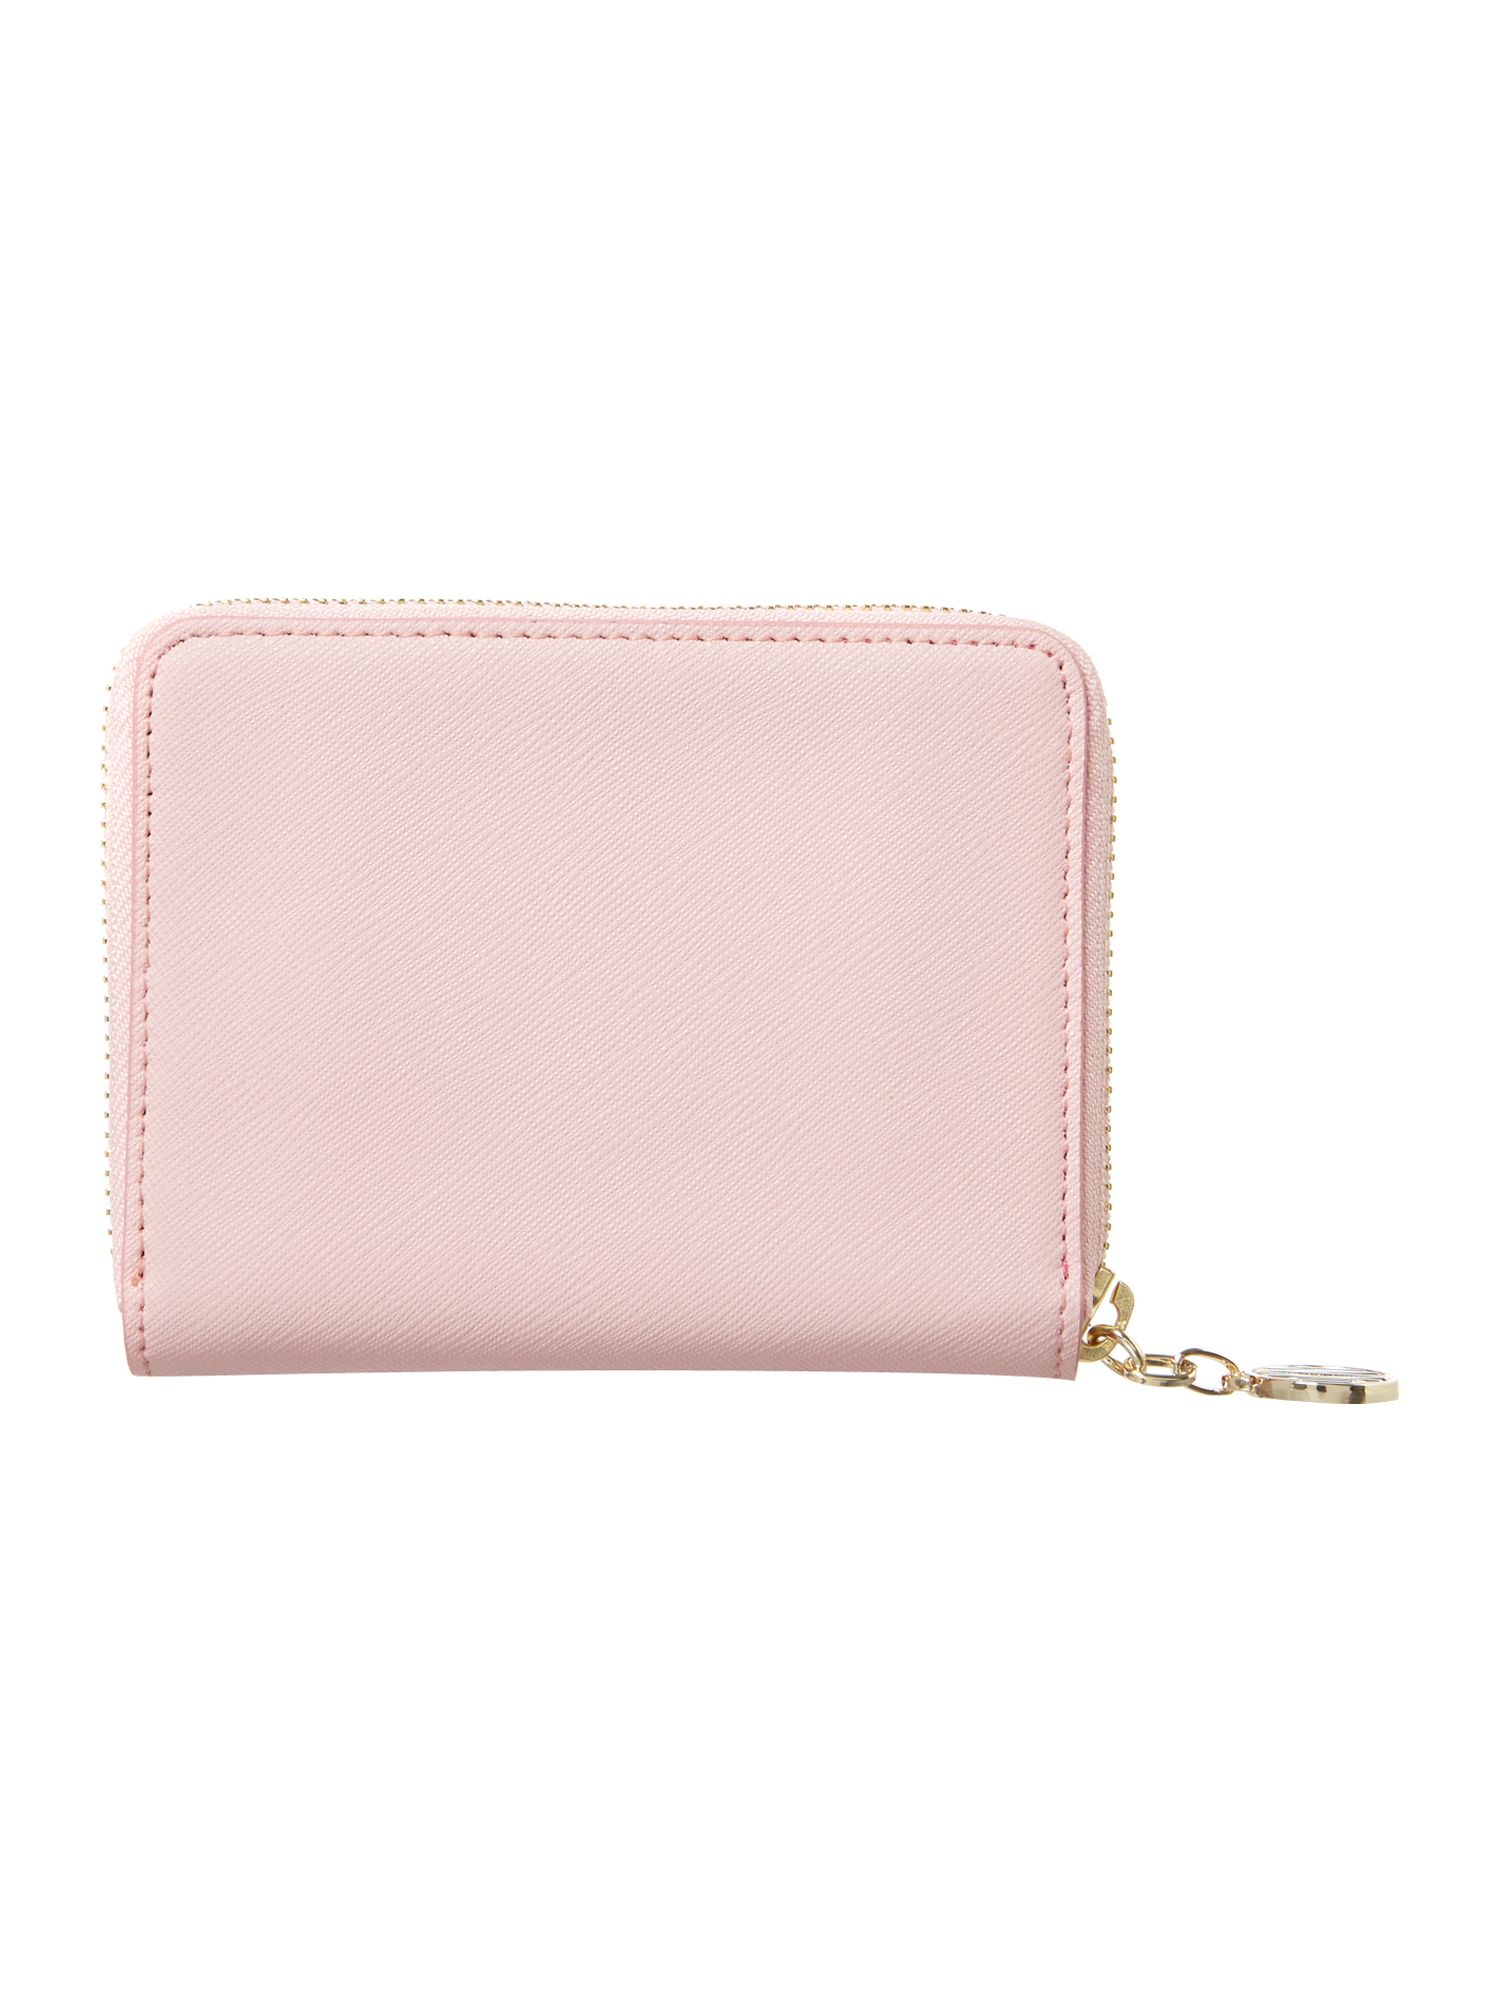 Saffiano pink small zip around purse